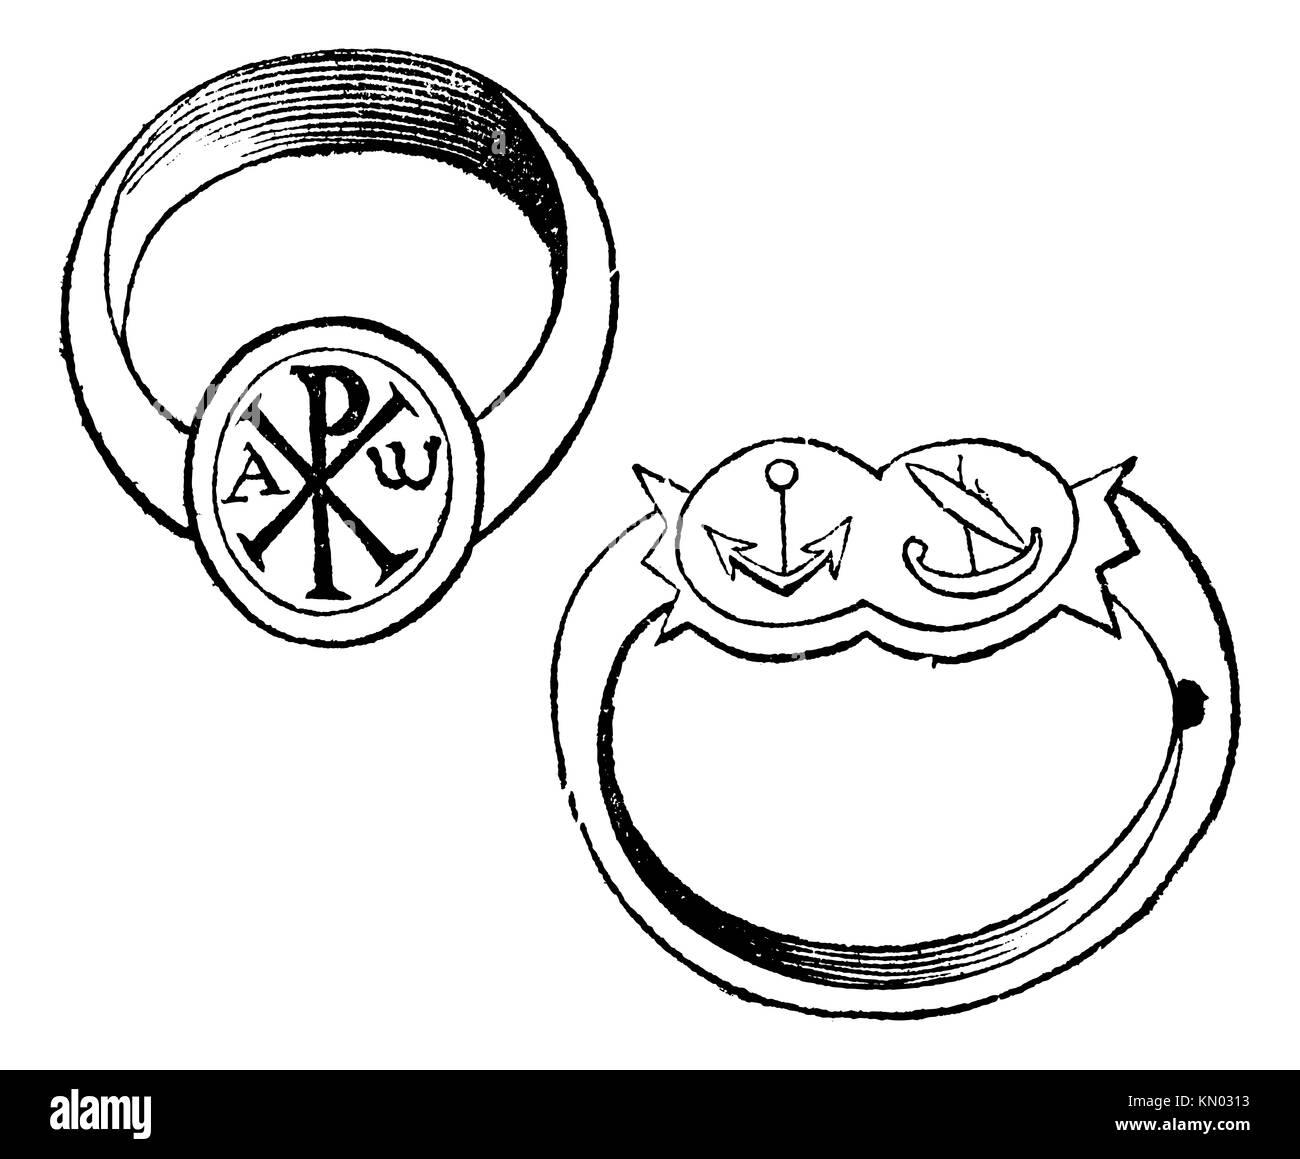 Dove and fish as christian symbols stock photos dove and fish as two christian episcopal rings with symbols vintage engraving old engraved illustration of a bishp or archbishop biocorpaavc